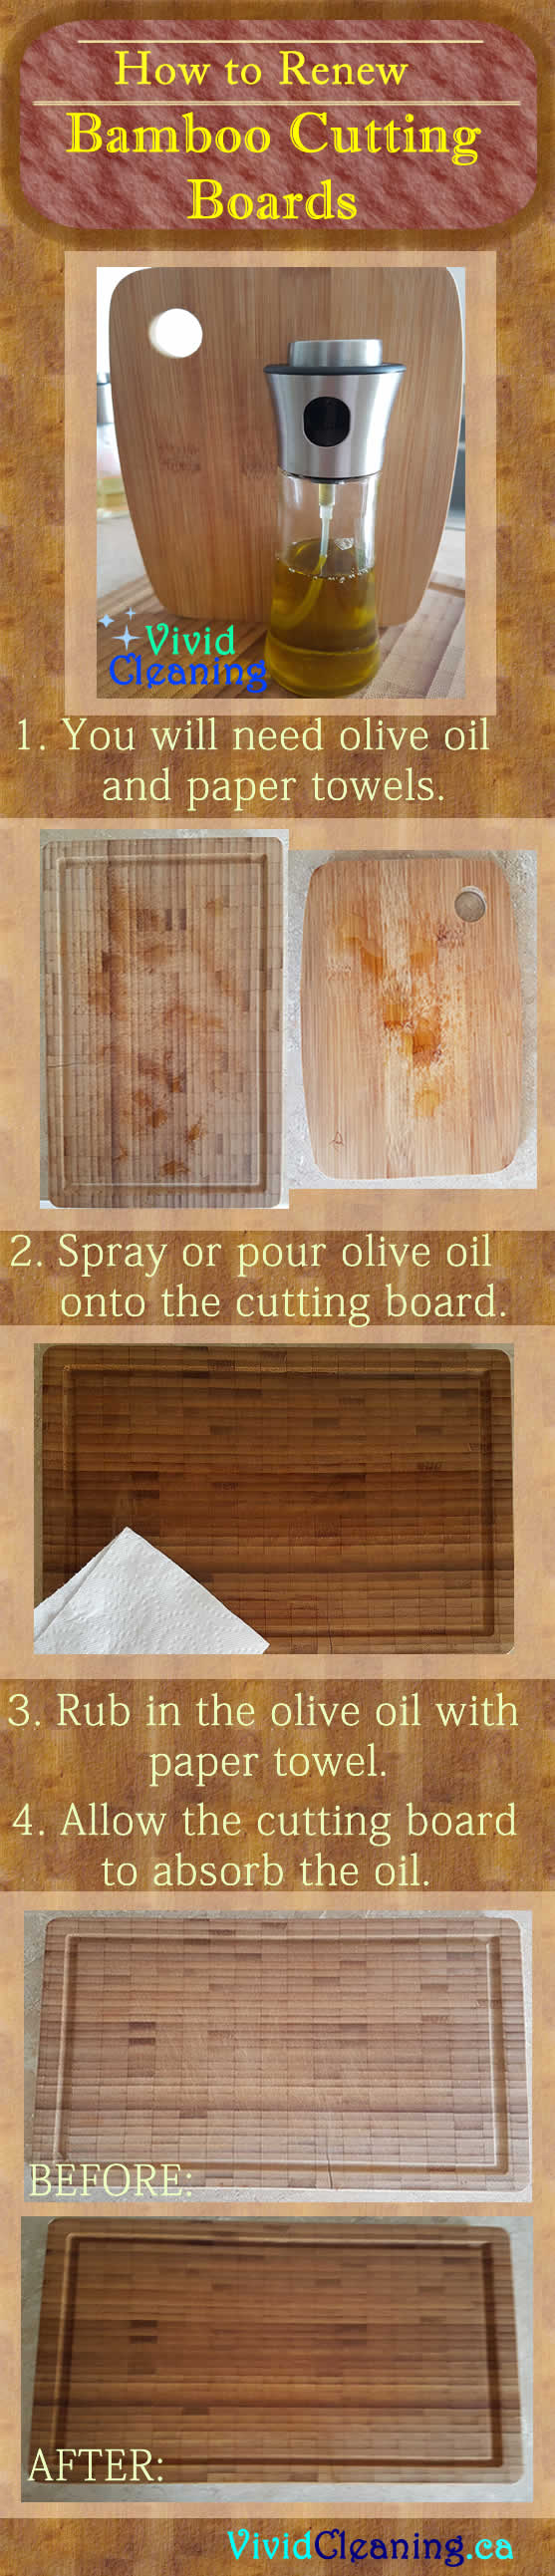 How to Renew Bamboo Cutting Boards 1. You will need olive oil and paper towels. 2. Spray or pour olive oil onto the cutting board. 3. Rub in the olive oil with paper towel. 4. Allow the cutting board to absorb the oil.